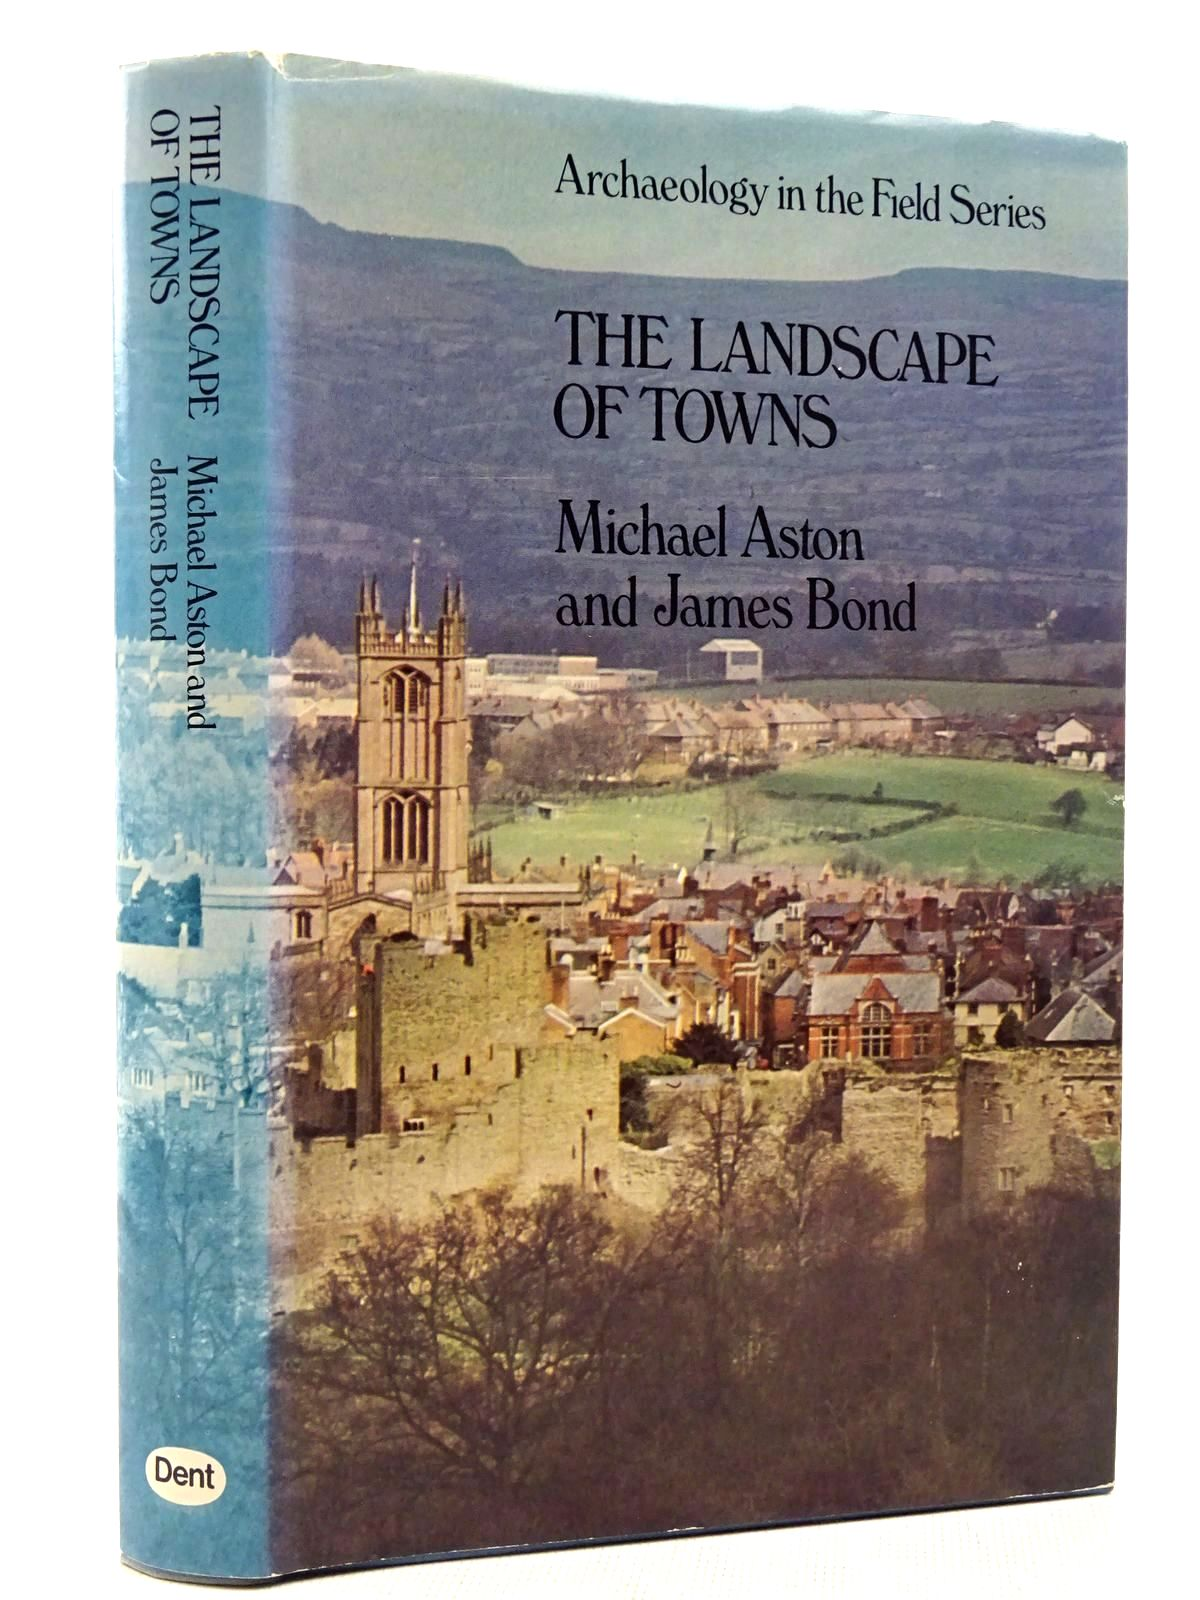 Photo of THE LANDSCAPE OF TOWNS written by Aston, Mick Bond, James published by J.M. Dent & Sons Ltd. (STOCK CODE: 2128923)  for sale by Stella & Rose's Books